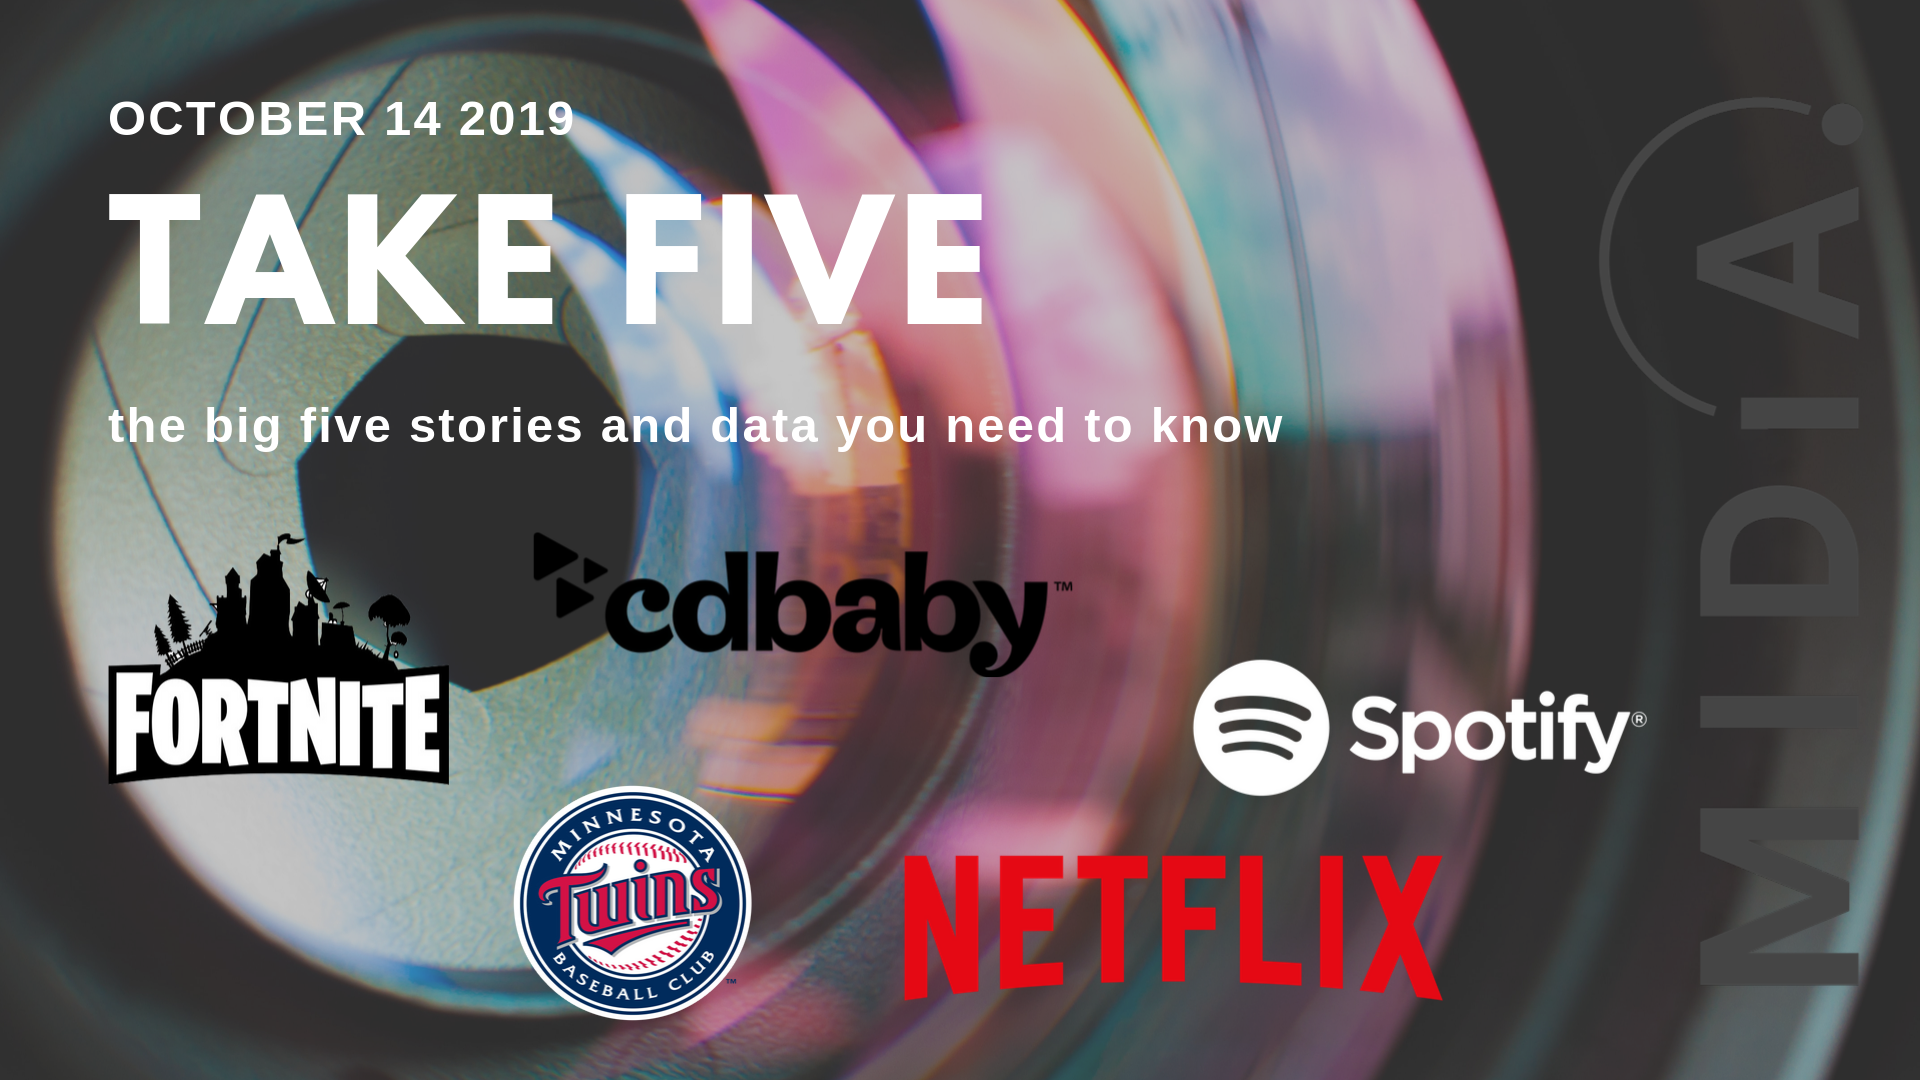 Cover image for Take Five (the big five stories and data you need to know) October 14th 2019